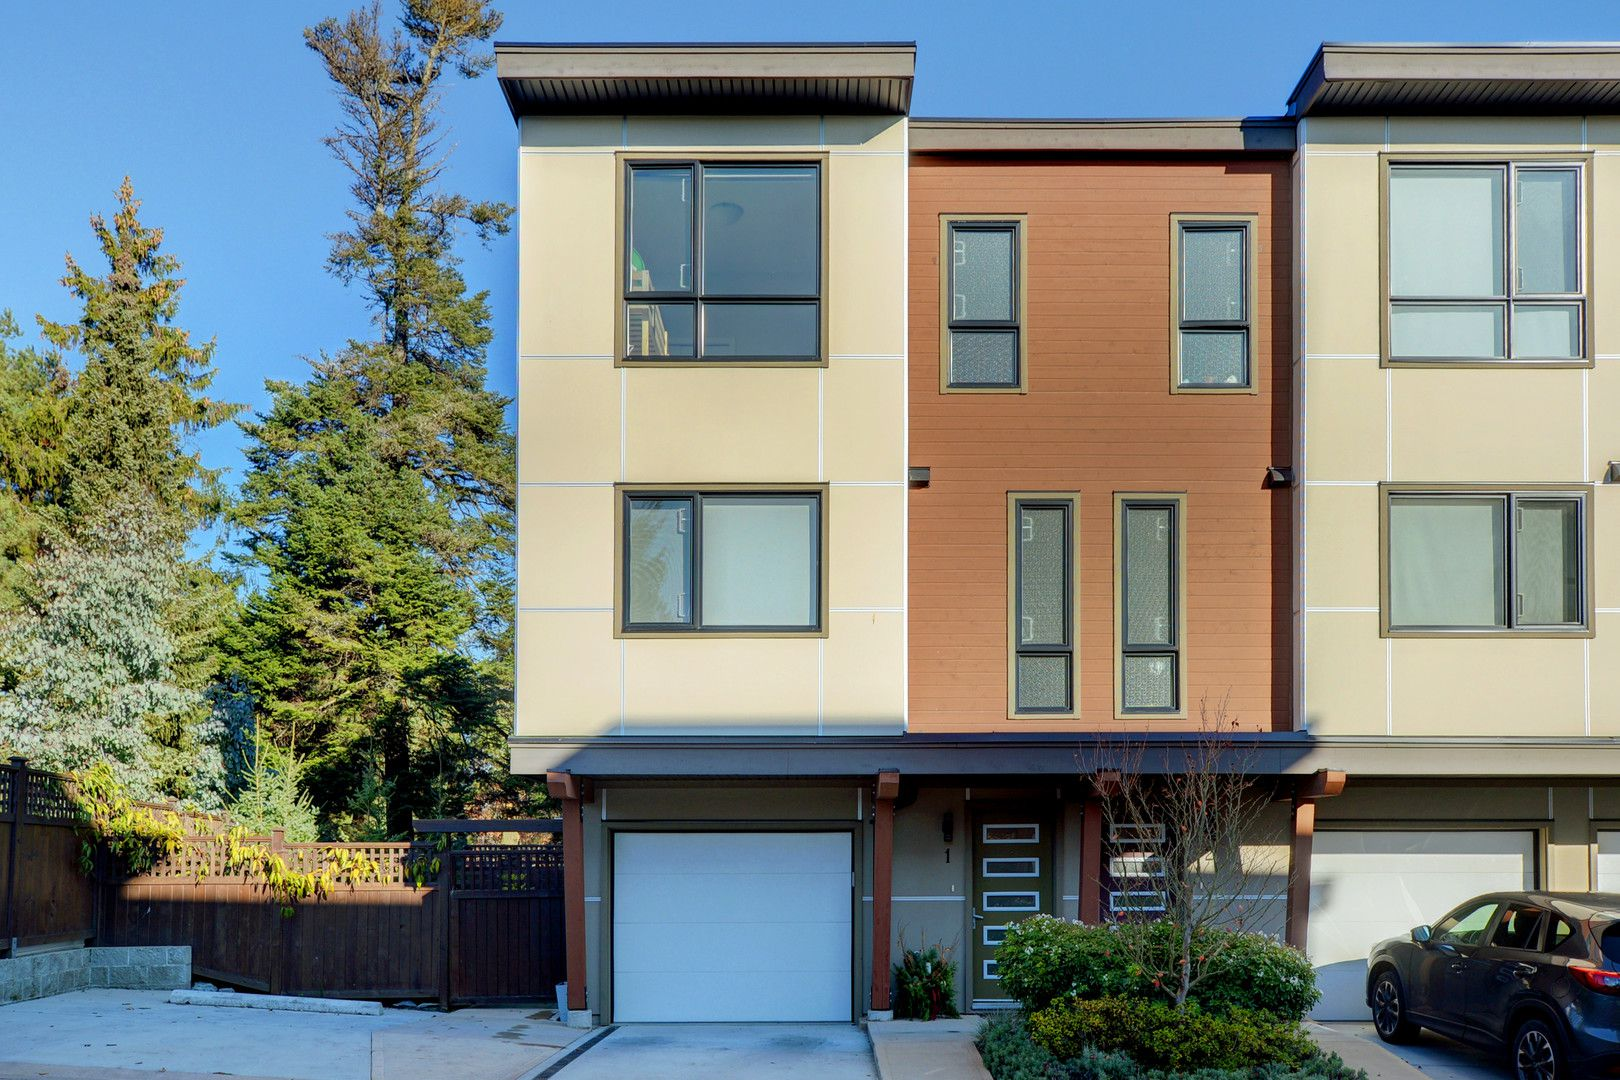 Main Photo: 1 1060 Tillicum Road in VICTORIA: Es Kinsmen Park Townhouse for sale (Esquimalt)  : MLS®# 401848